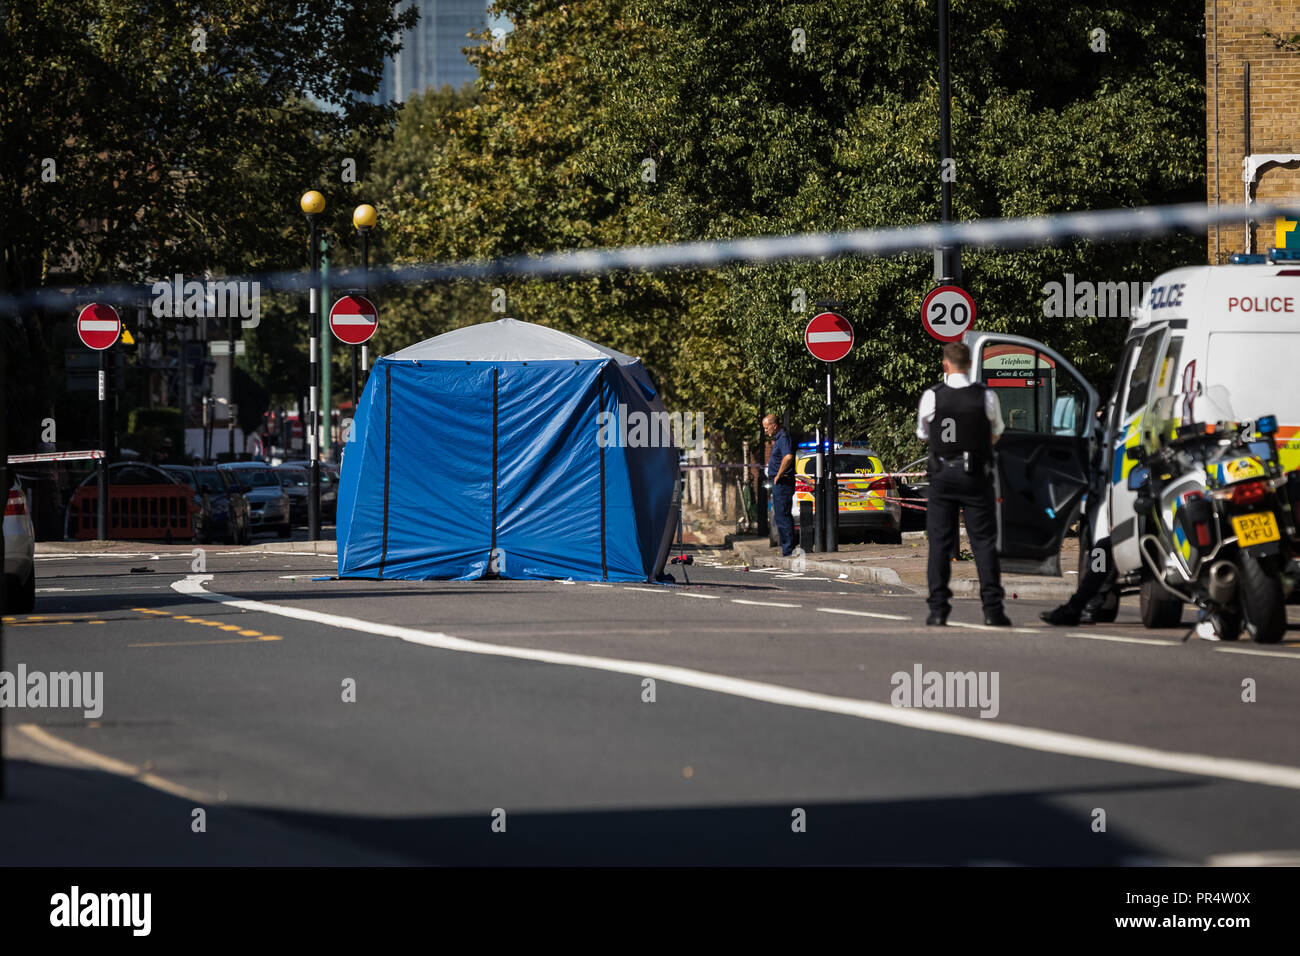 London, UK. 29th Sept, 2018. Cyclist fatality in Deptford. Credit: Guy Corbishley/Alamy Live News - Stock Image